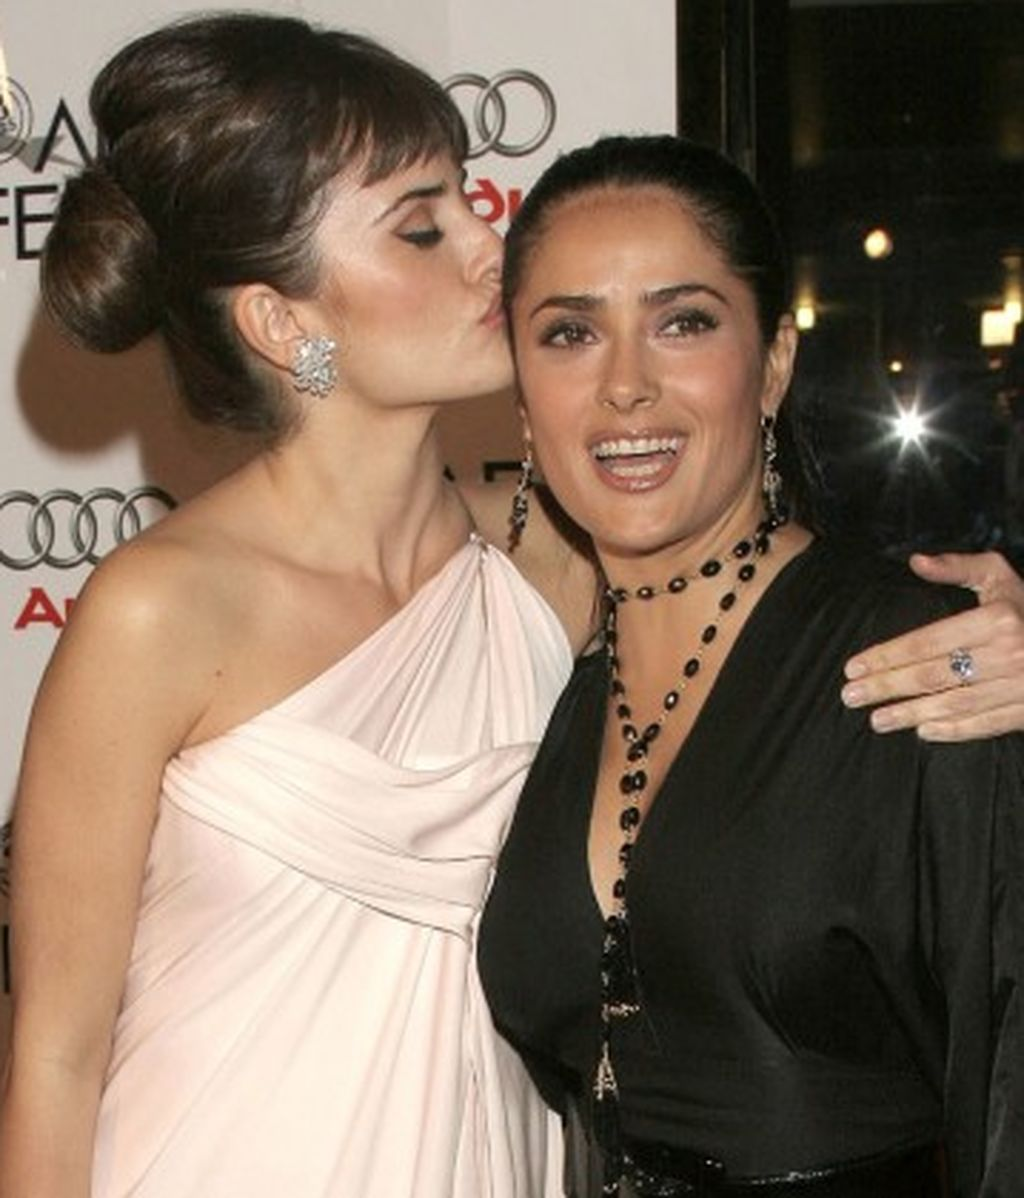 Penelope-Cruz-and-Salma-Hayek-650x425